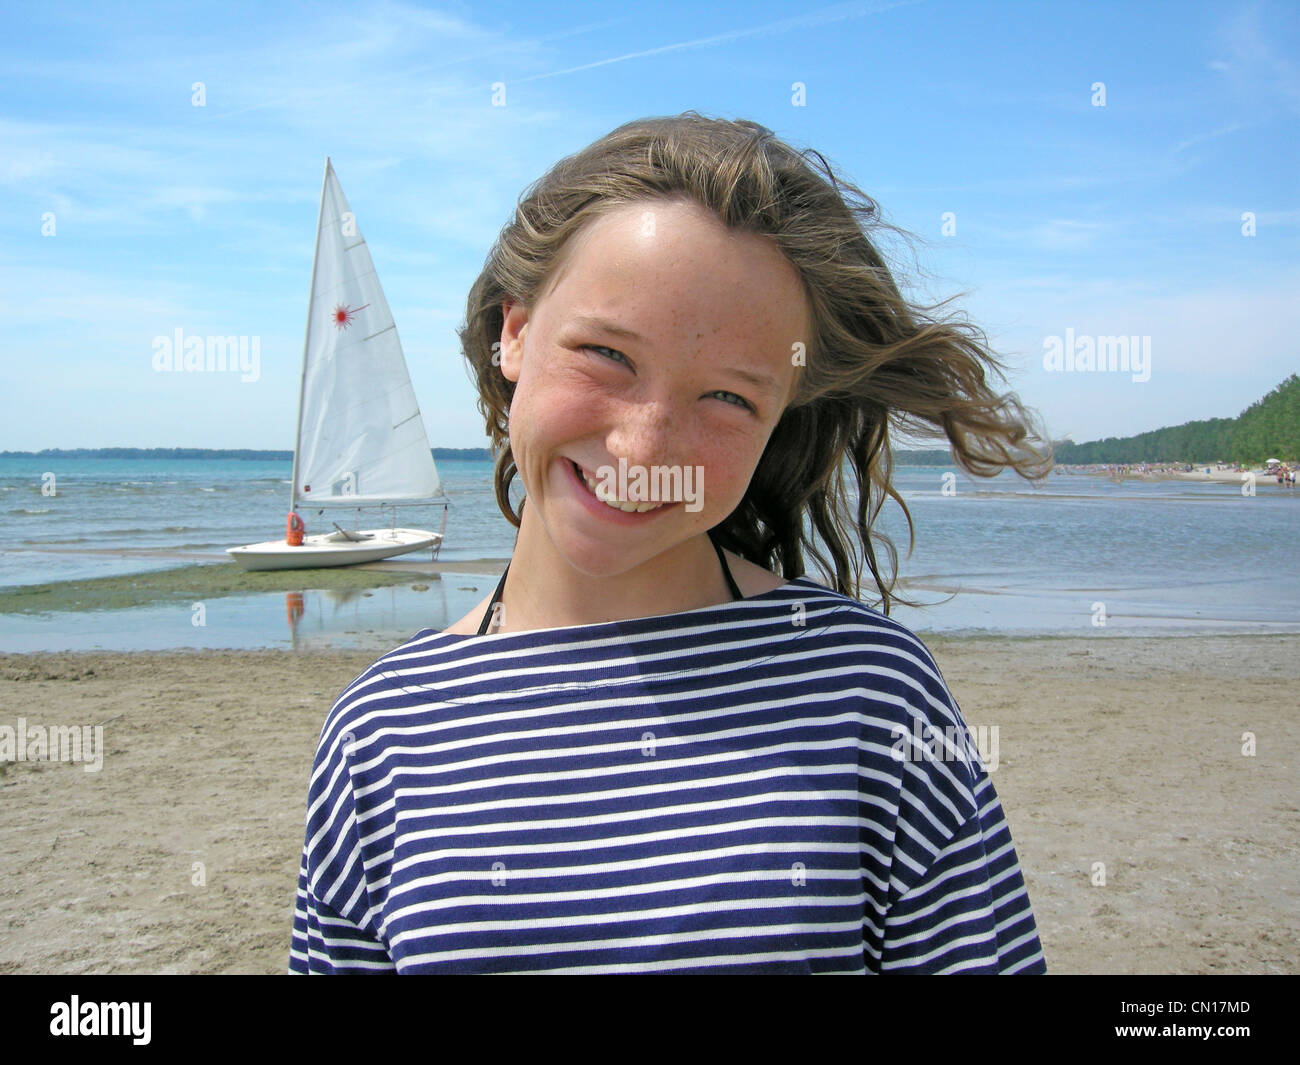 Portrait of young girl on beach with sailboat in background, Sandbanks Provincial Park, Prince Edward County, Ontario - Stock Image